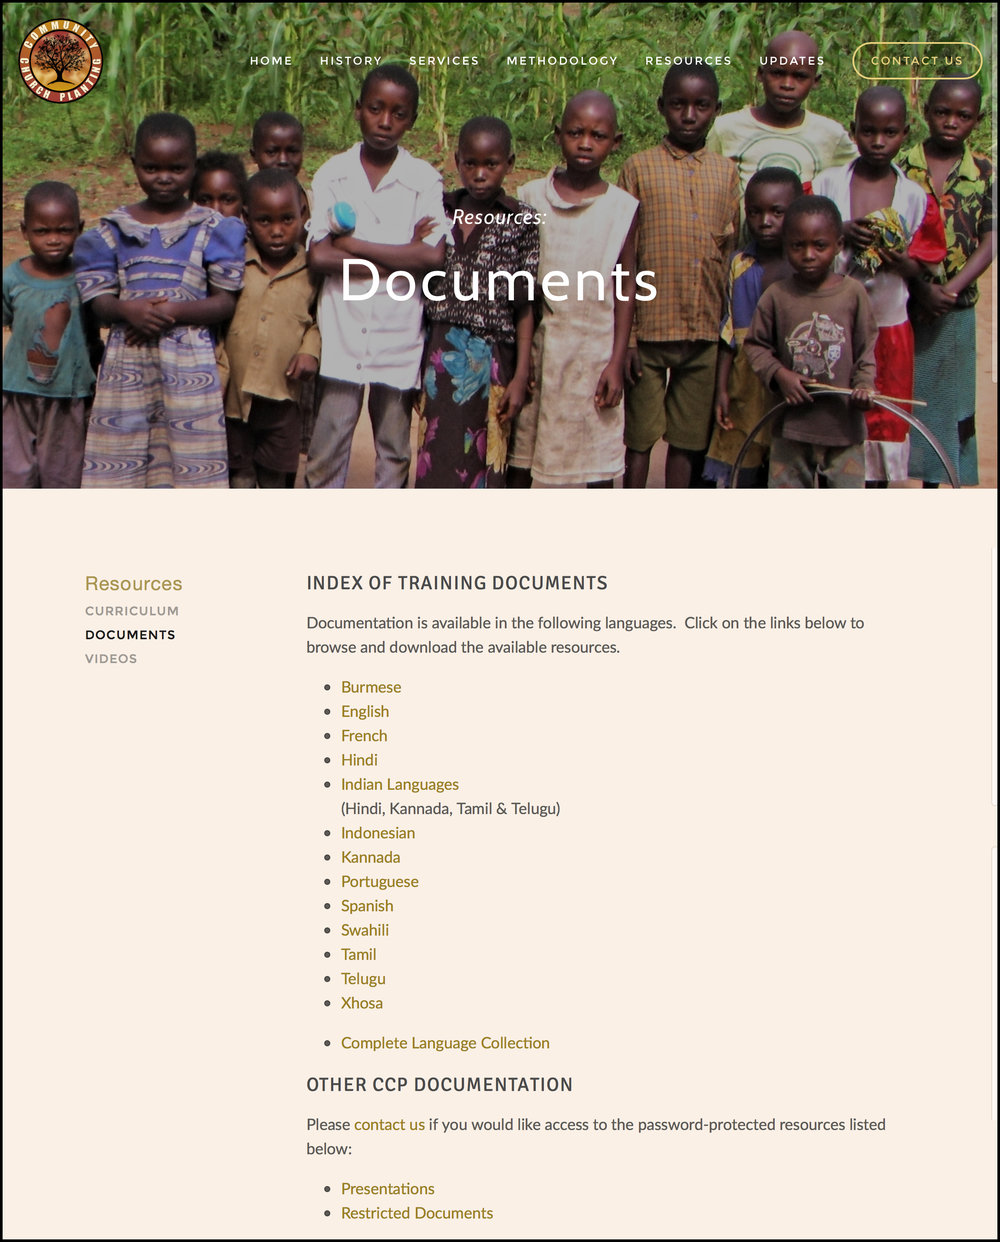 Resources > Documents page.